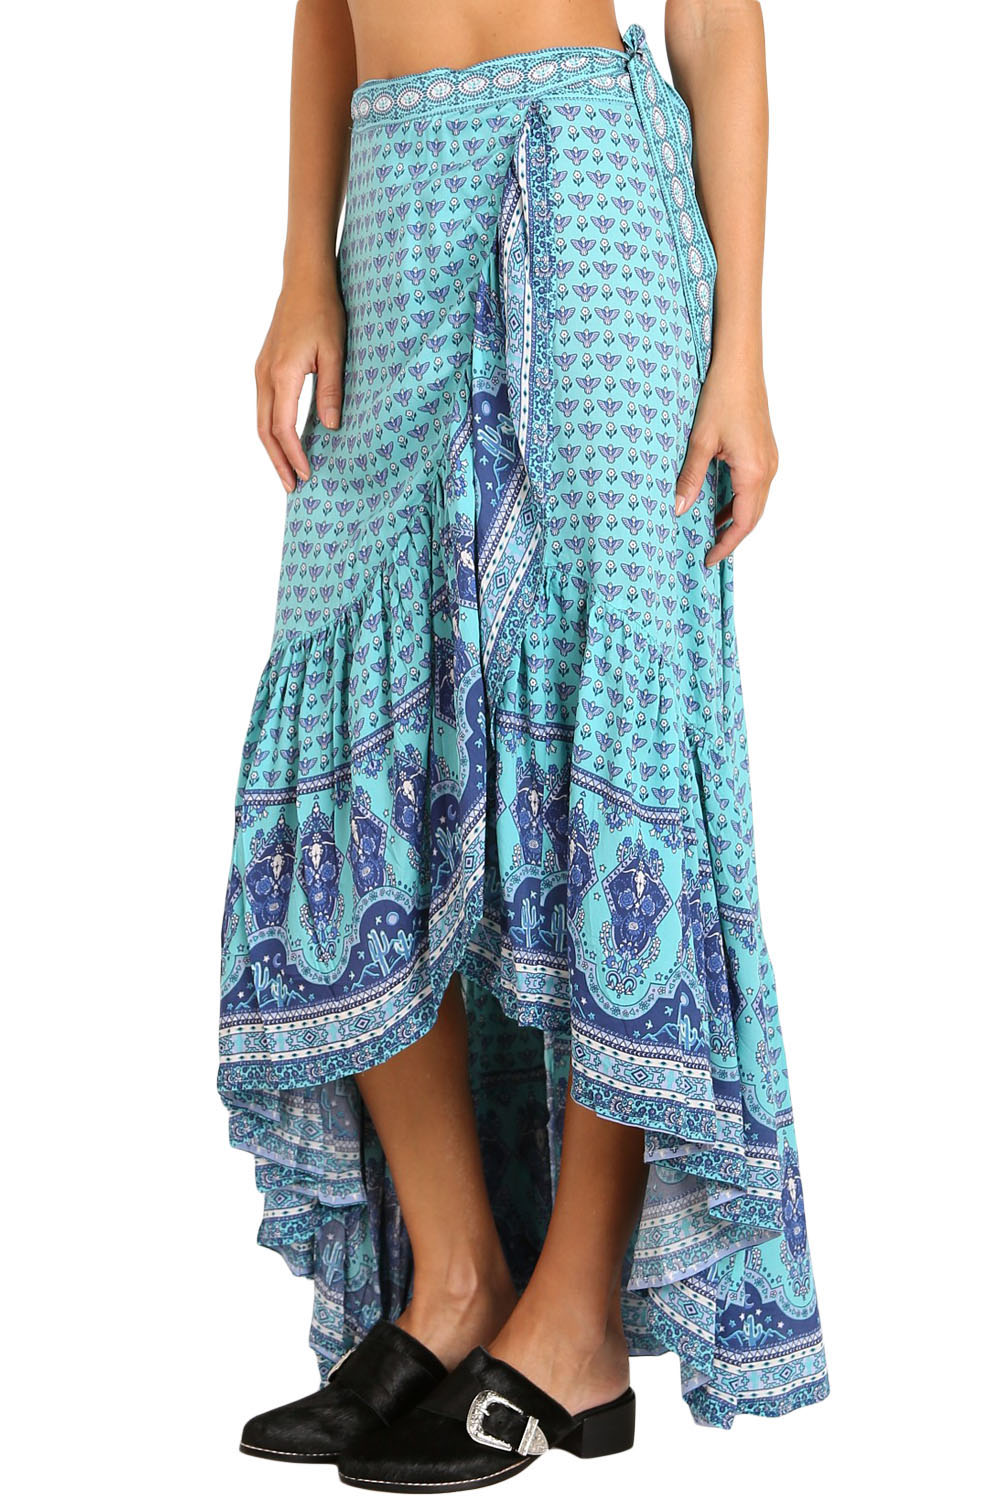 409c098f87 Blue Gypsy Style Print Sarong Beach Dress in 2019 | ♥♥ Style House ...